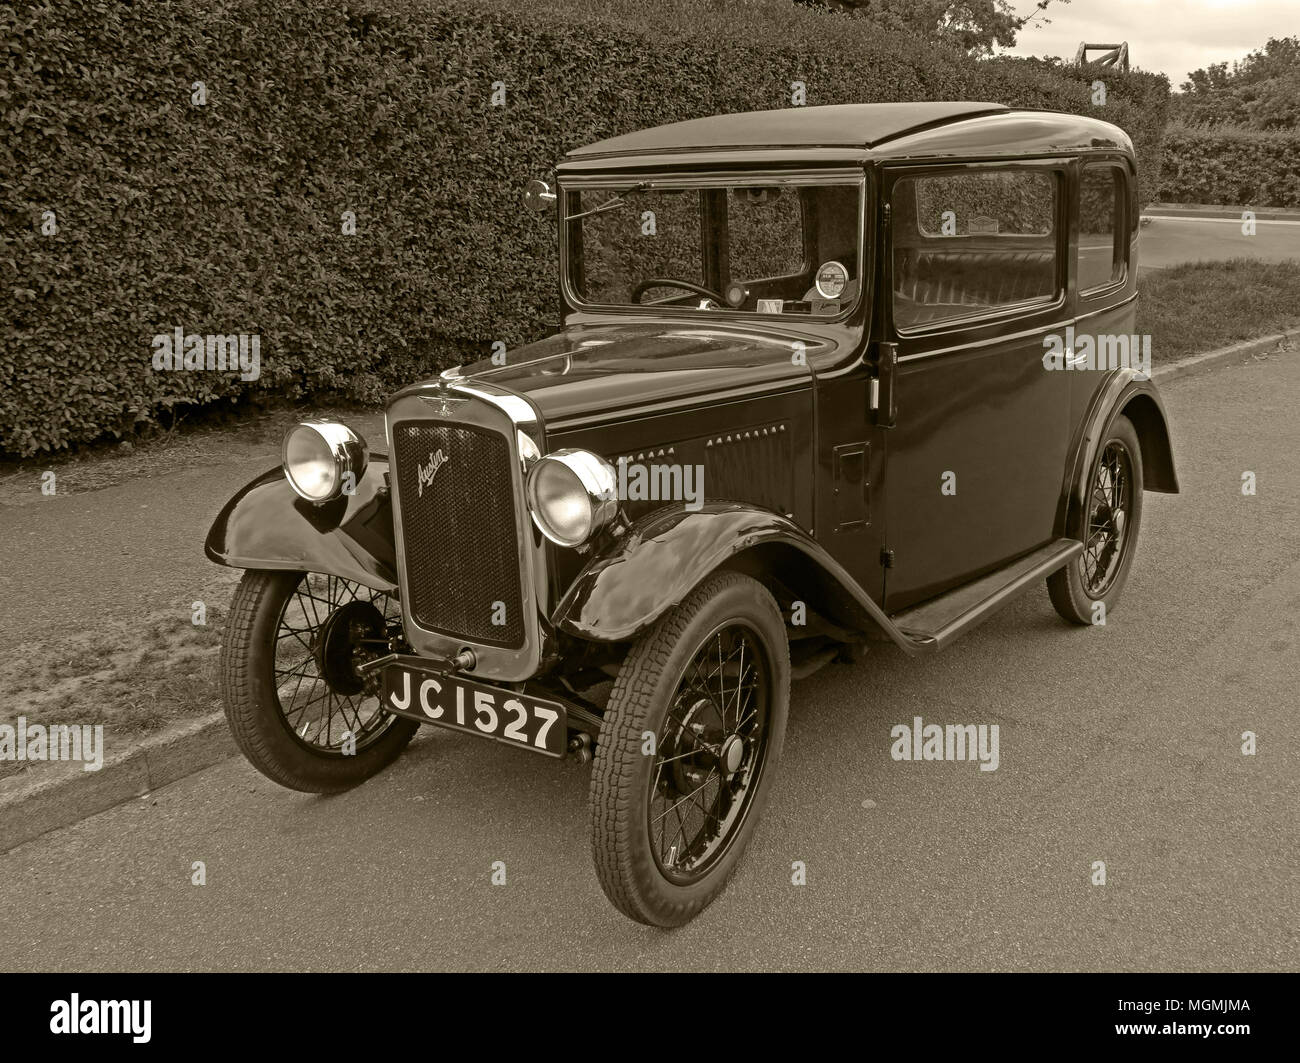 GoTonySmith,automobile,vehicle,classic,saloon,on,the,road,parked,JC 1527,petrol,engine,1922,Economy Car,Economy,history,historic,Great,British,UK,GB,United Kingdom,manufacturing,made,produced,Rosengarts,2 door,Great Britain,Sir Herbert Austin,Herbert Austin,Small car,smaller car,Horsepower tax,Austin factory,Longbridge,factory,carplant,car plant,plant,Brexit